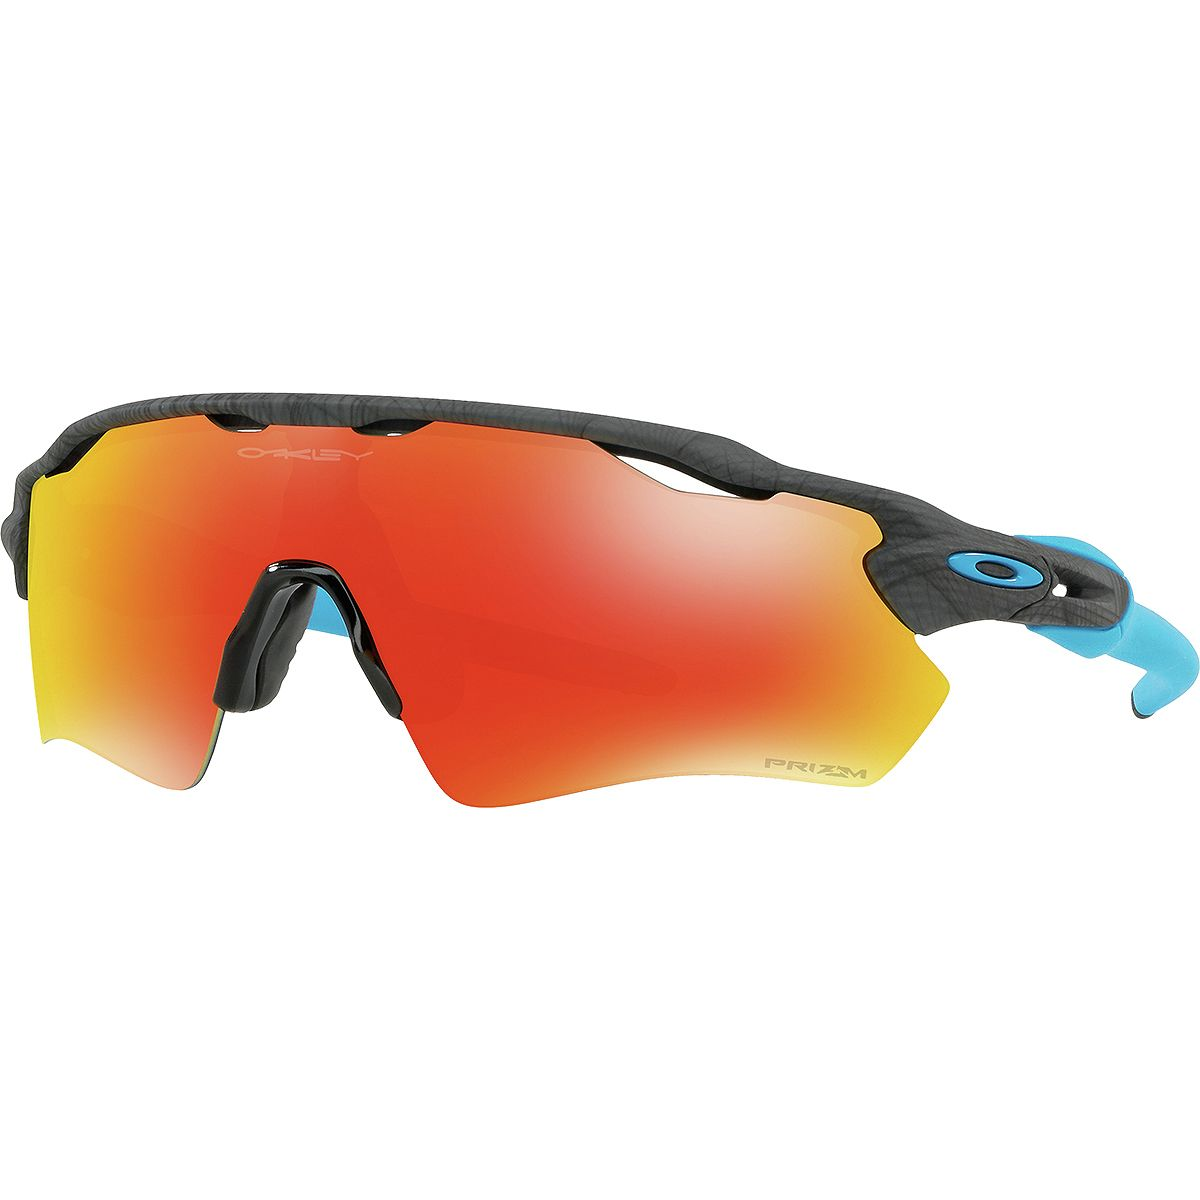 Oakley Radarlock Path Pol Blk/blk Irid & Vr28 - 2017 - Unique